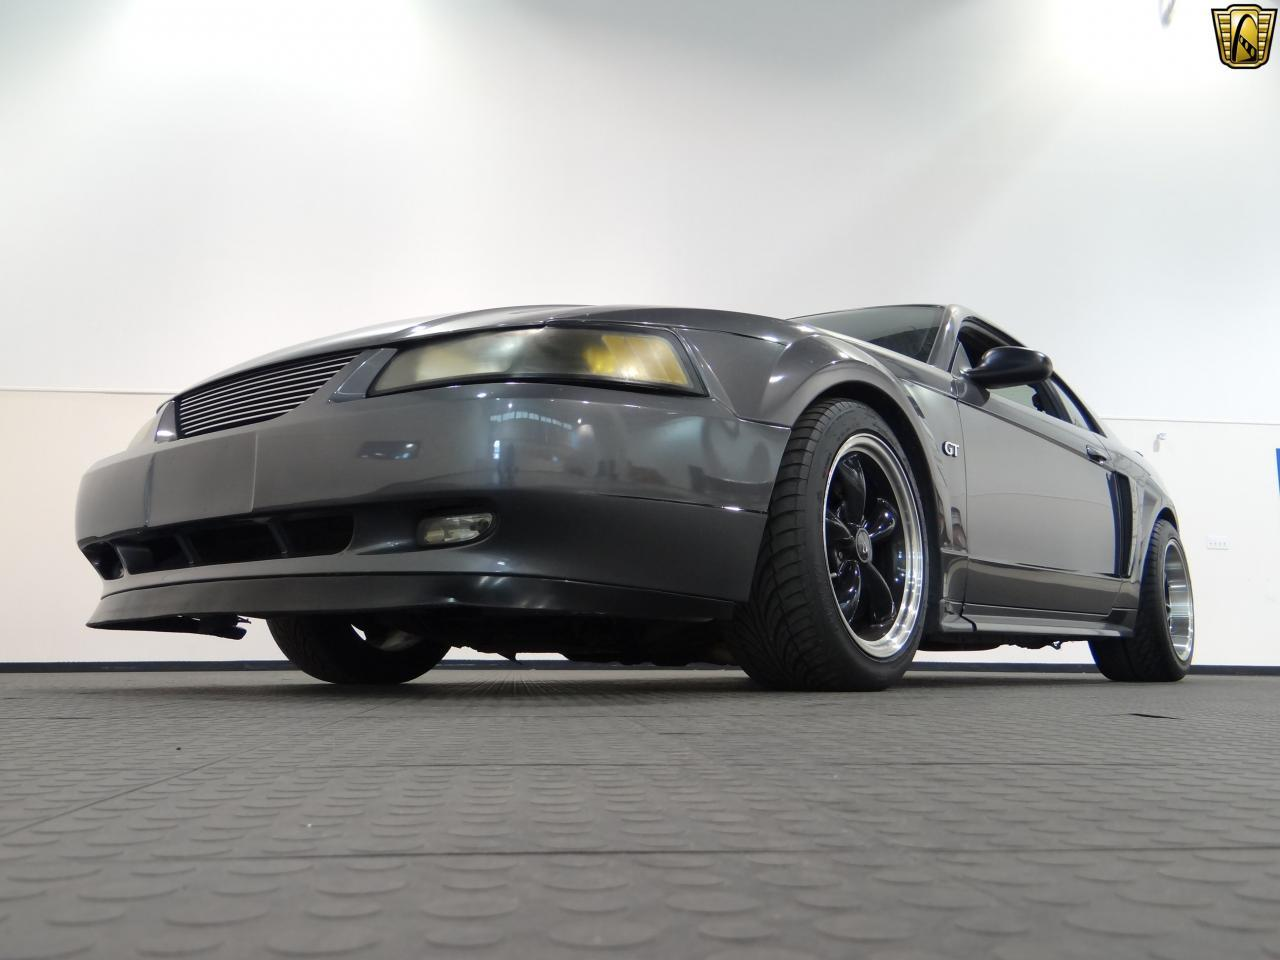 Large Picture of 2003 Ford Mustang located in Indianapolis Indiana - $11,995.00 - KE78